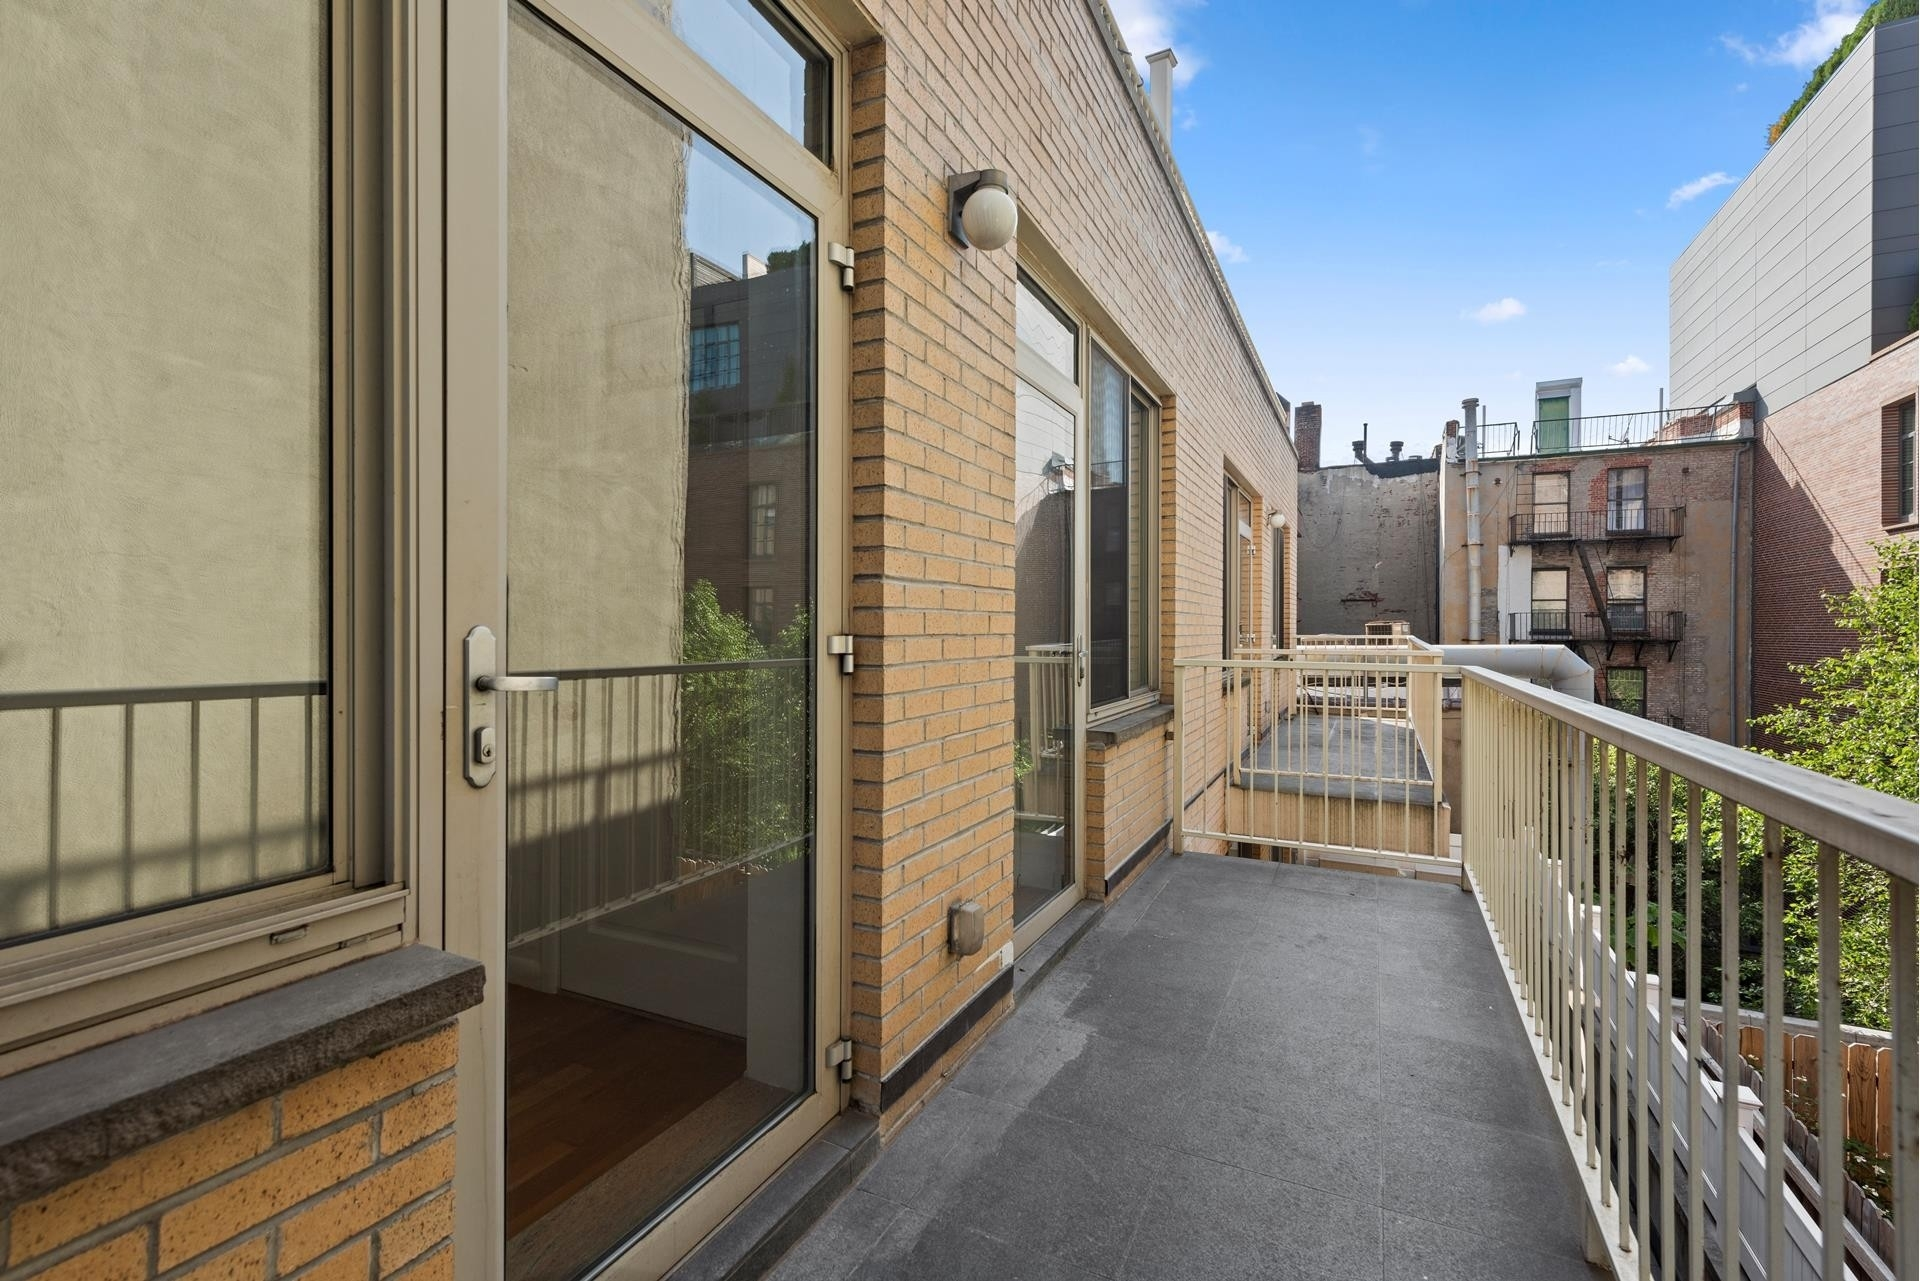 Property at 159 Bleecker St, 3C New York